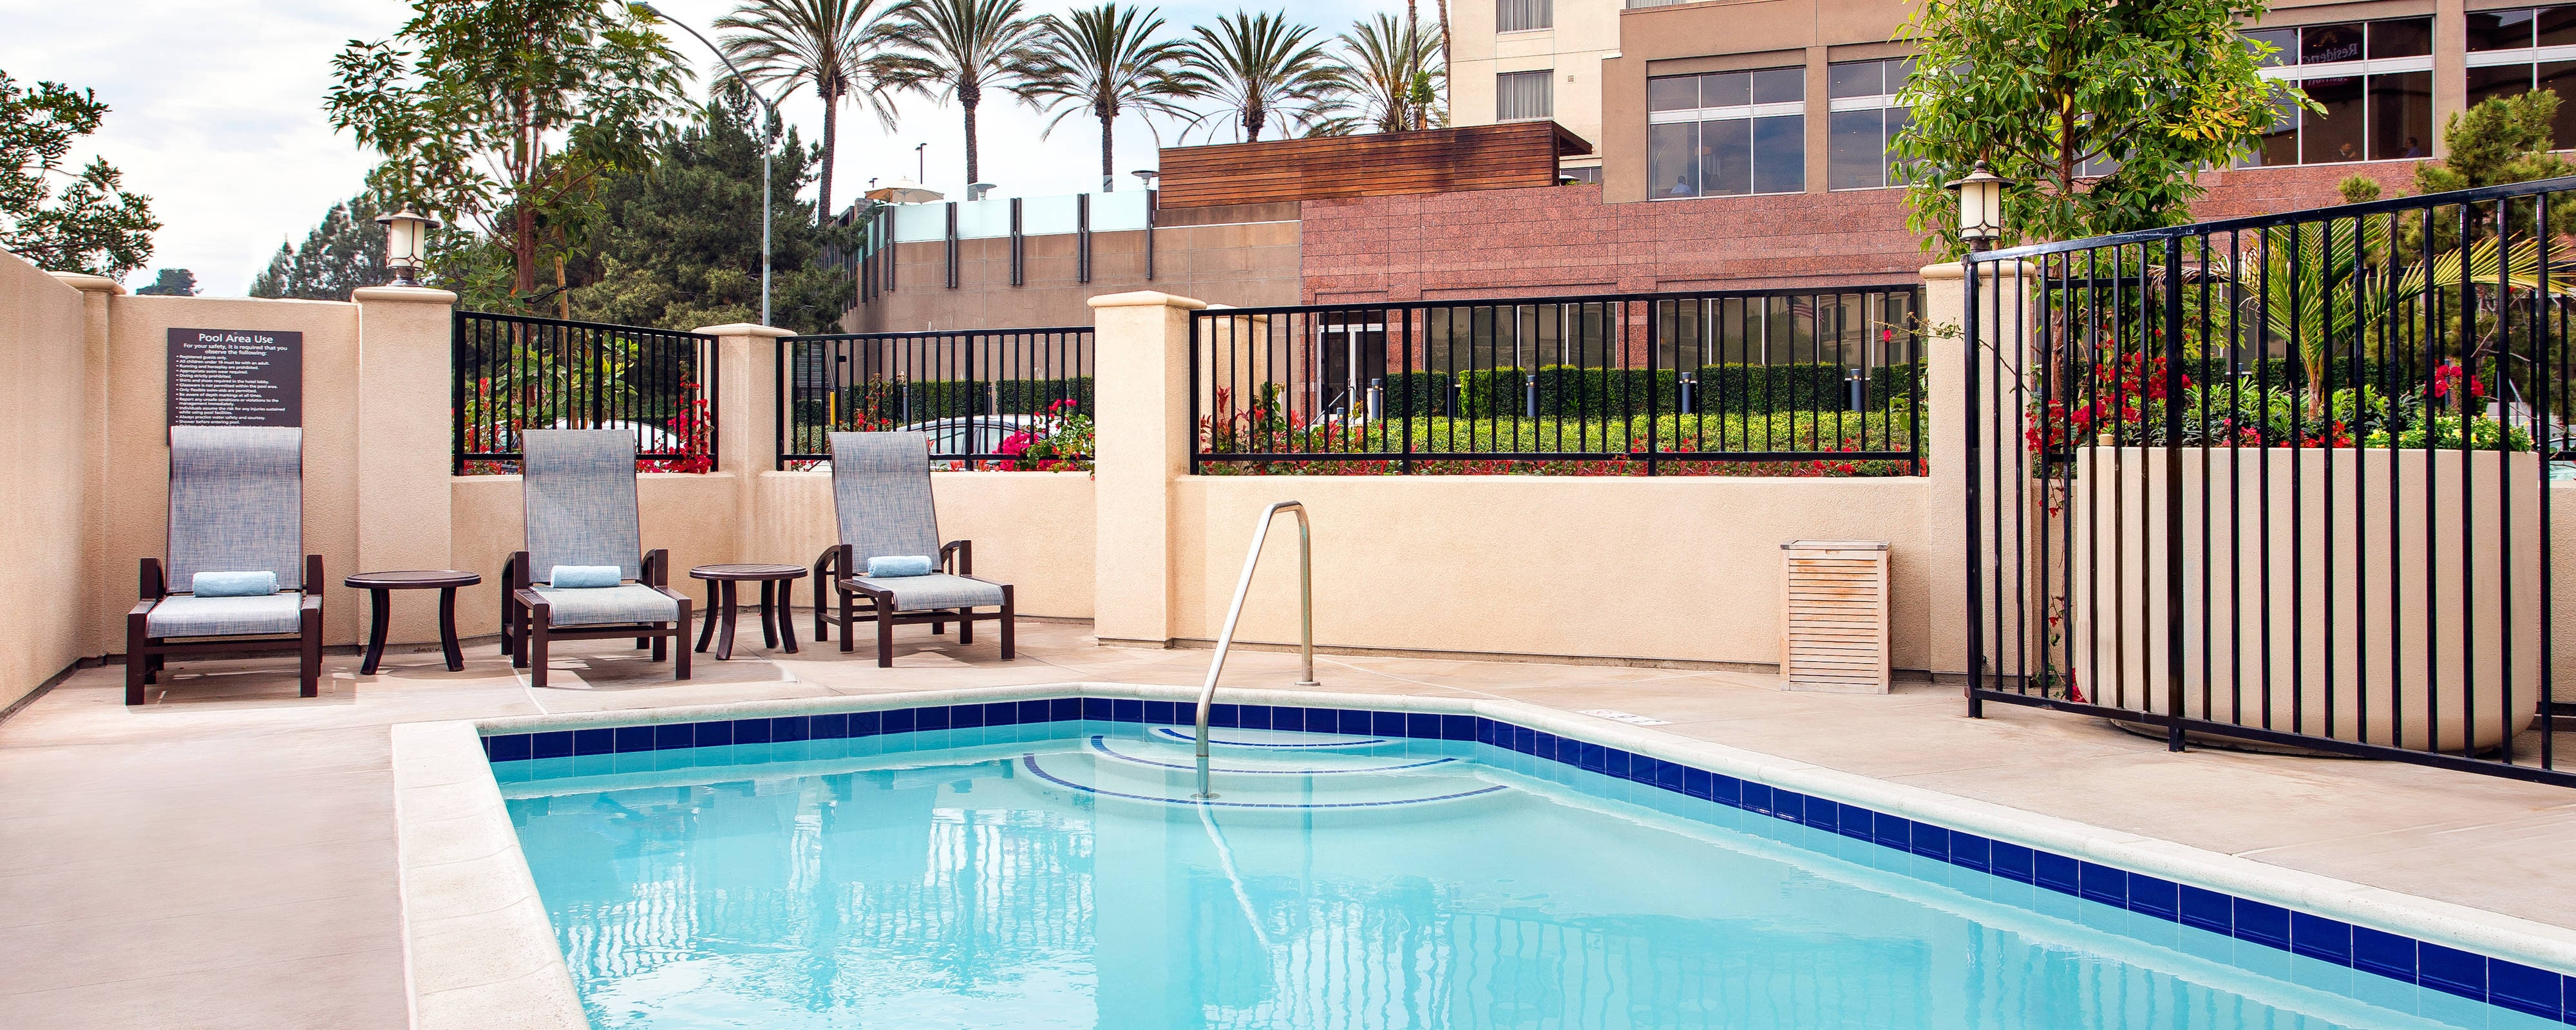 Pool San Diego Del Mar California Hotel